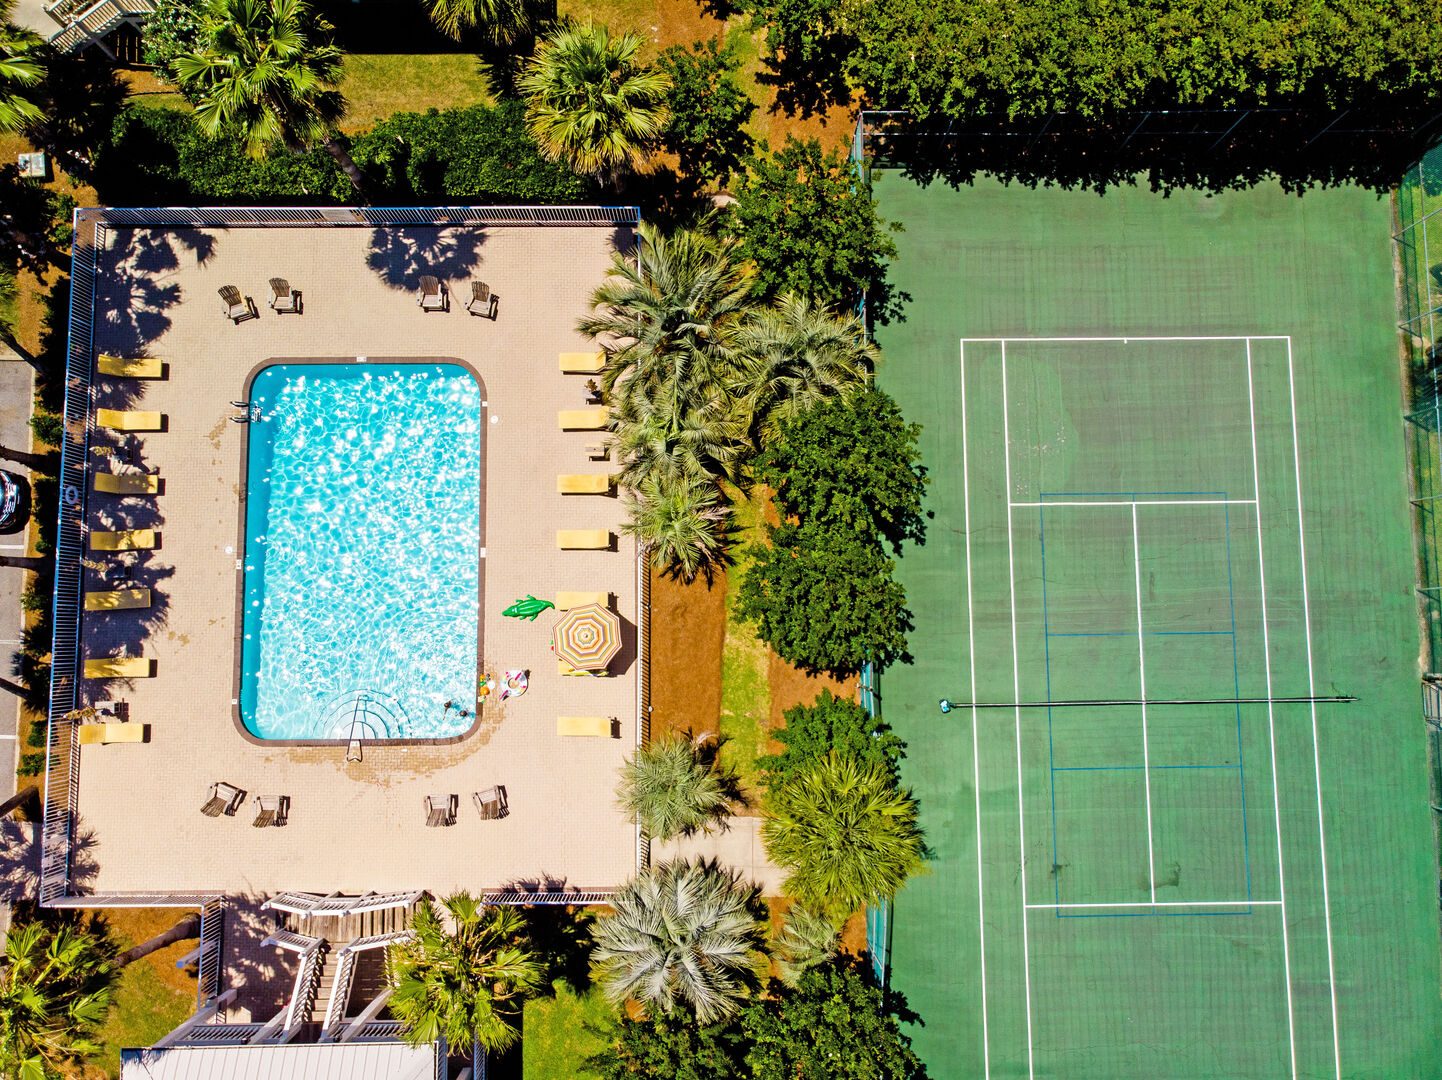 Play a Game of Tennis or Take a Dip in the Pool.